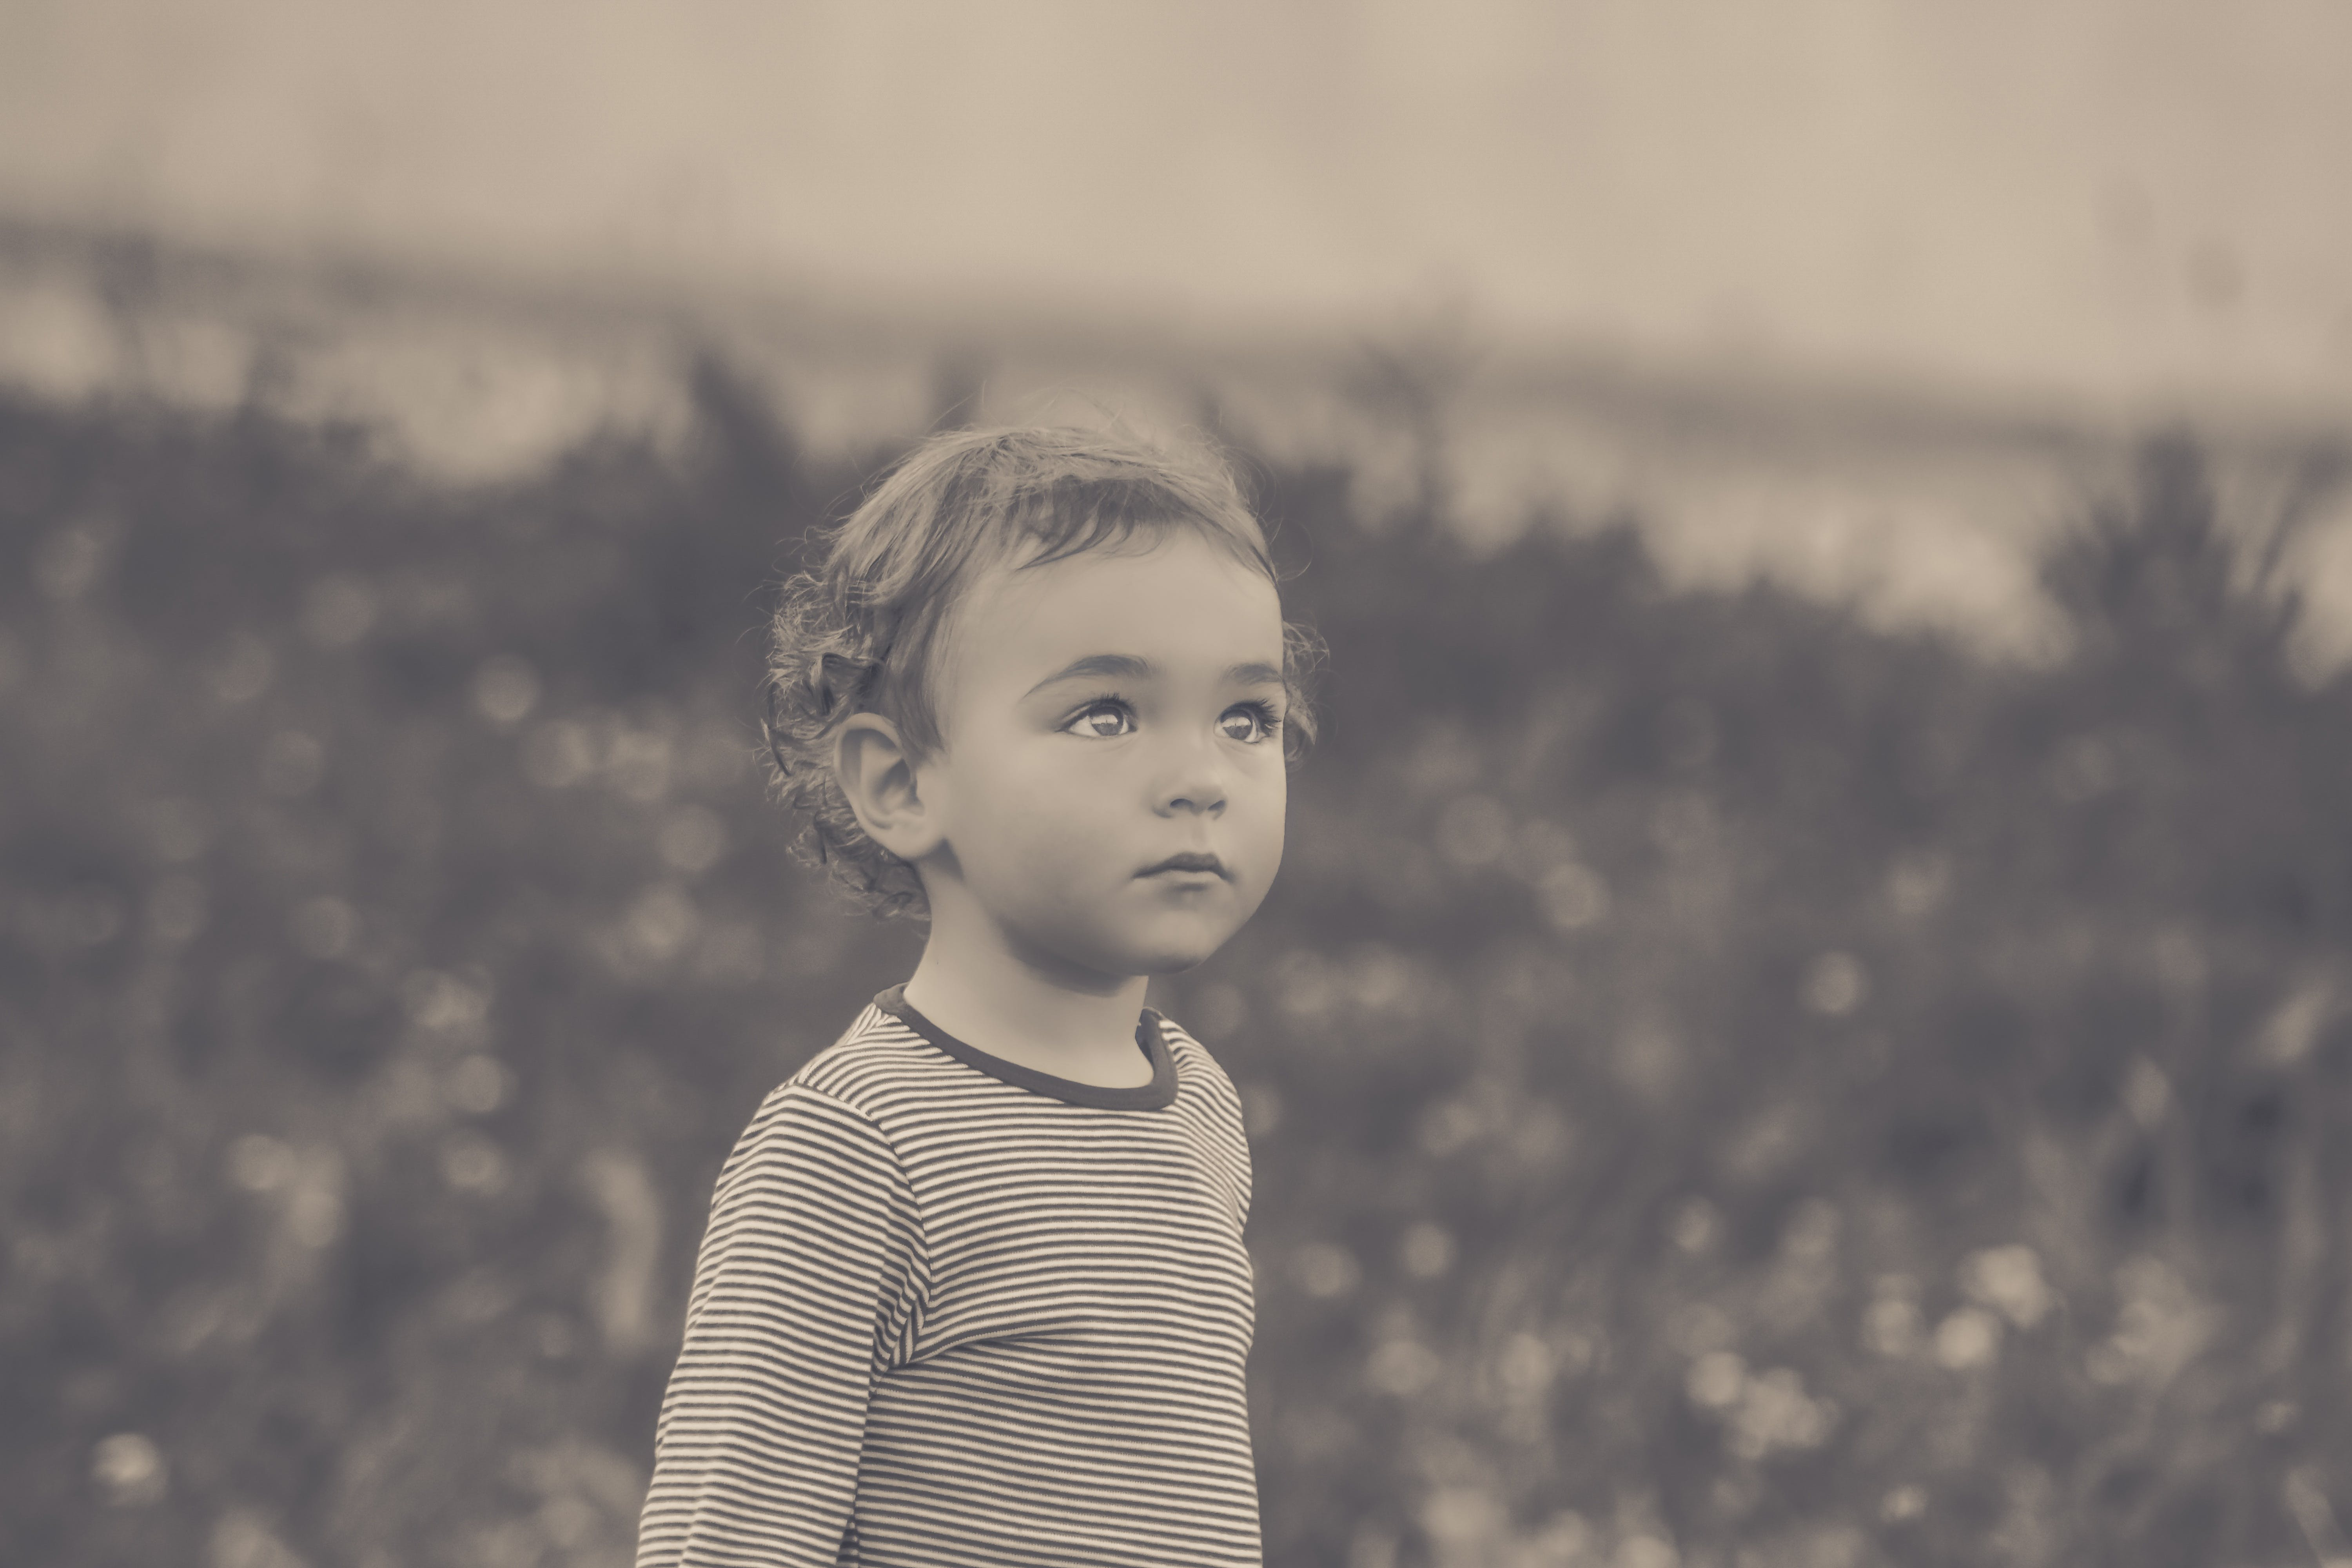 Selective Focus Grayscale Photo of Boy Looking Up